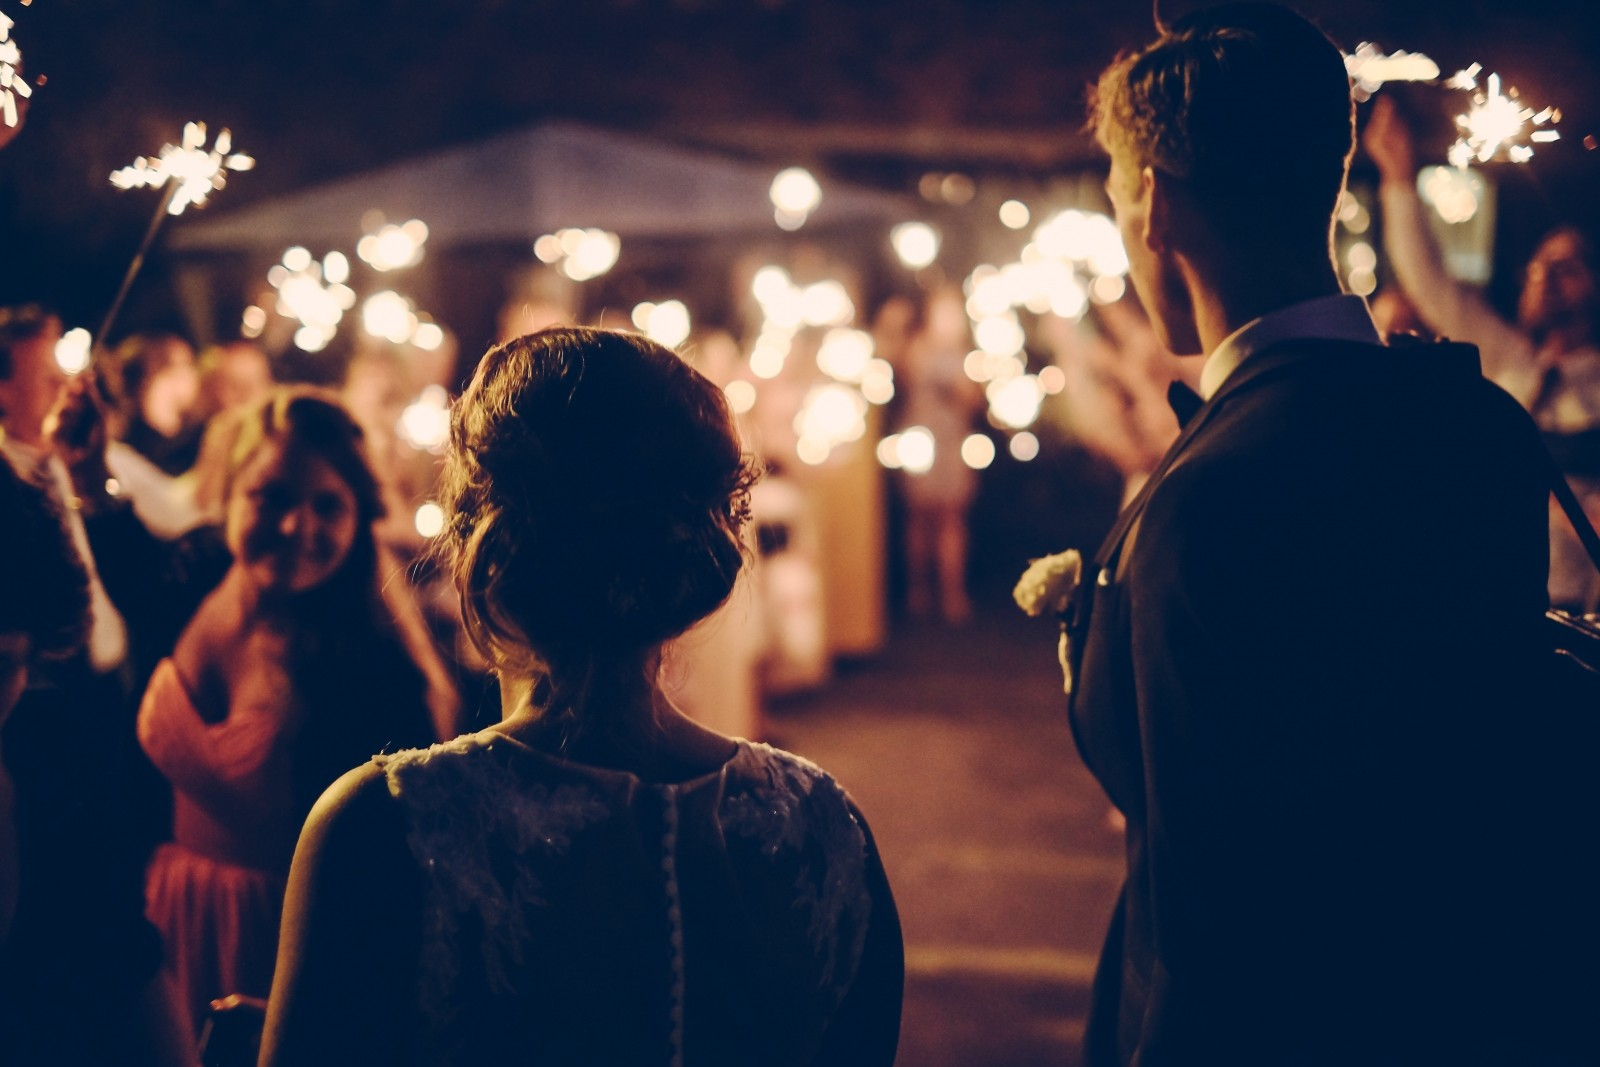 marriage-celebration-people-person-wedding-love